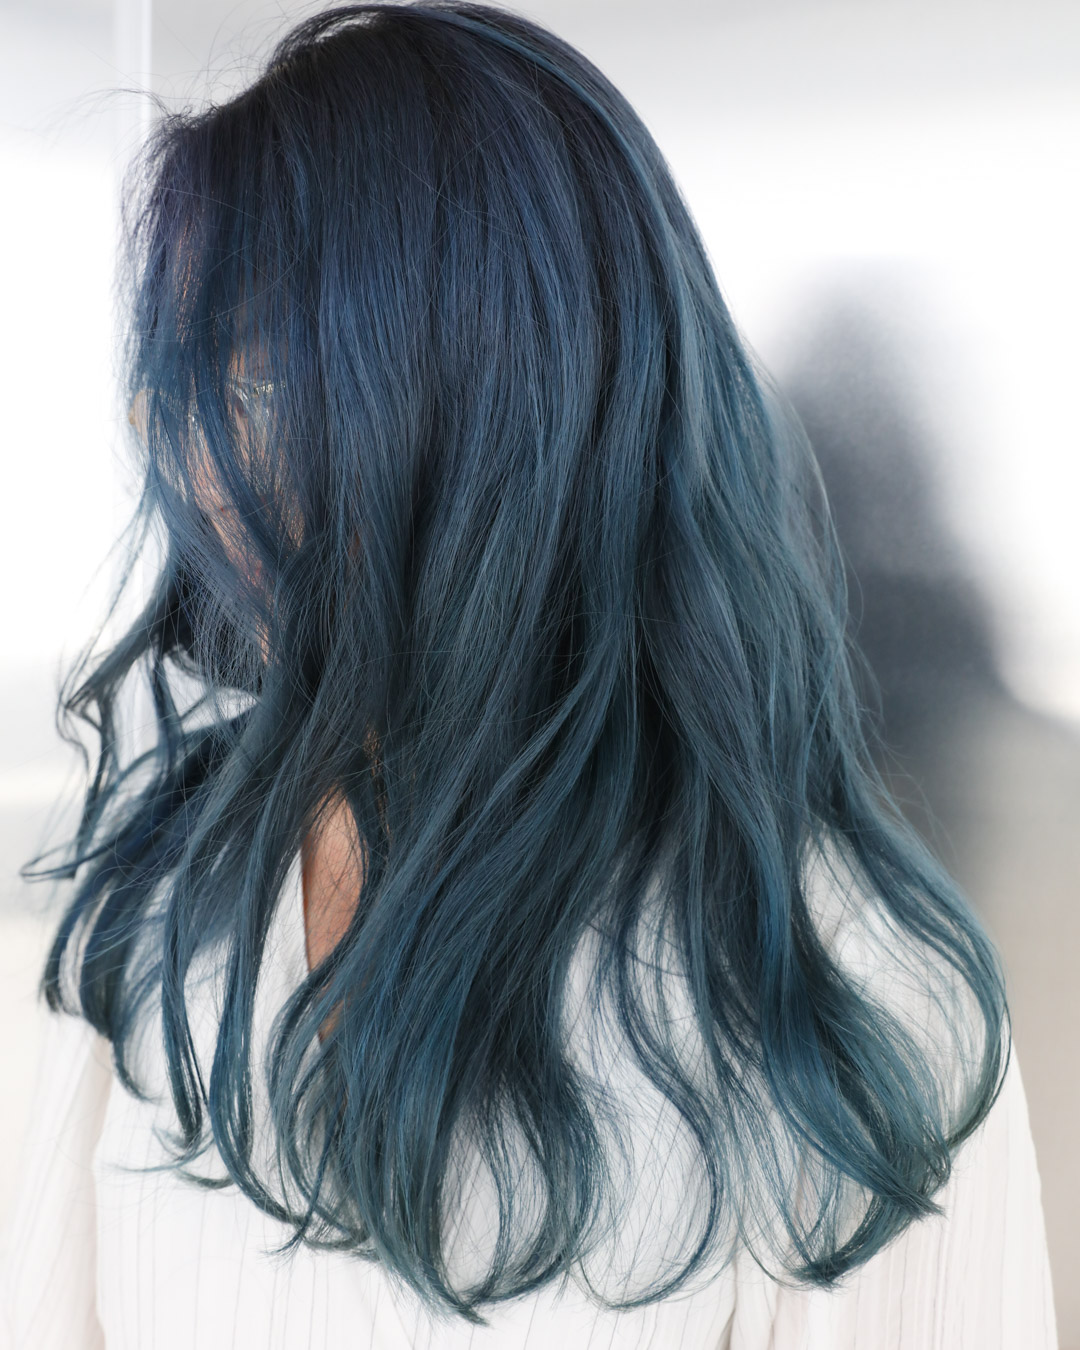 TEAL BLUE - MENUWhole-head bleach, Colour, Blow wave and stylePRICEapprox. $595(Whole-head bleach long $350, Colour long $180, Blow wave and style from $65)TIMEapprox. 4 hours